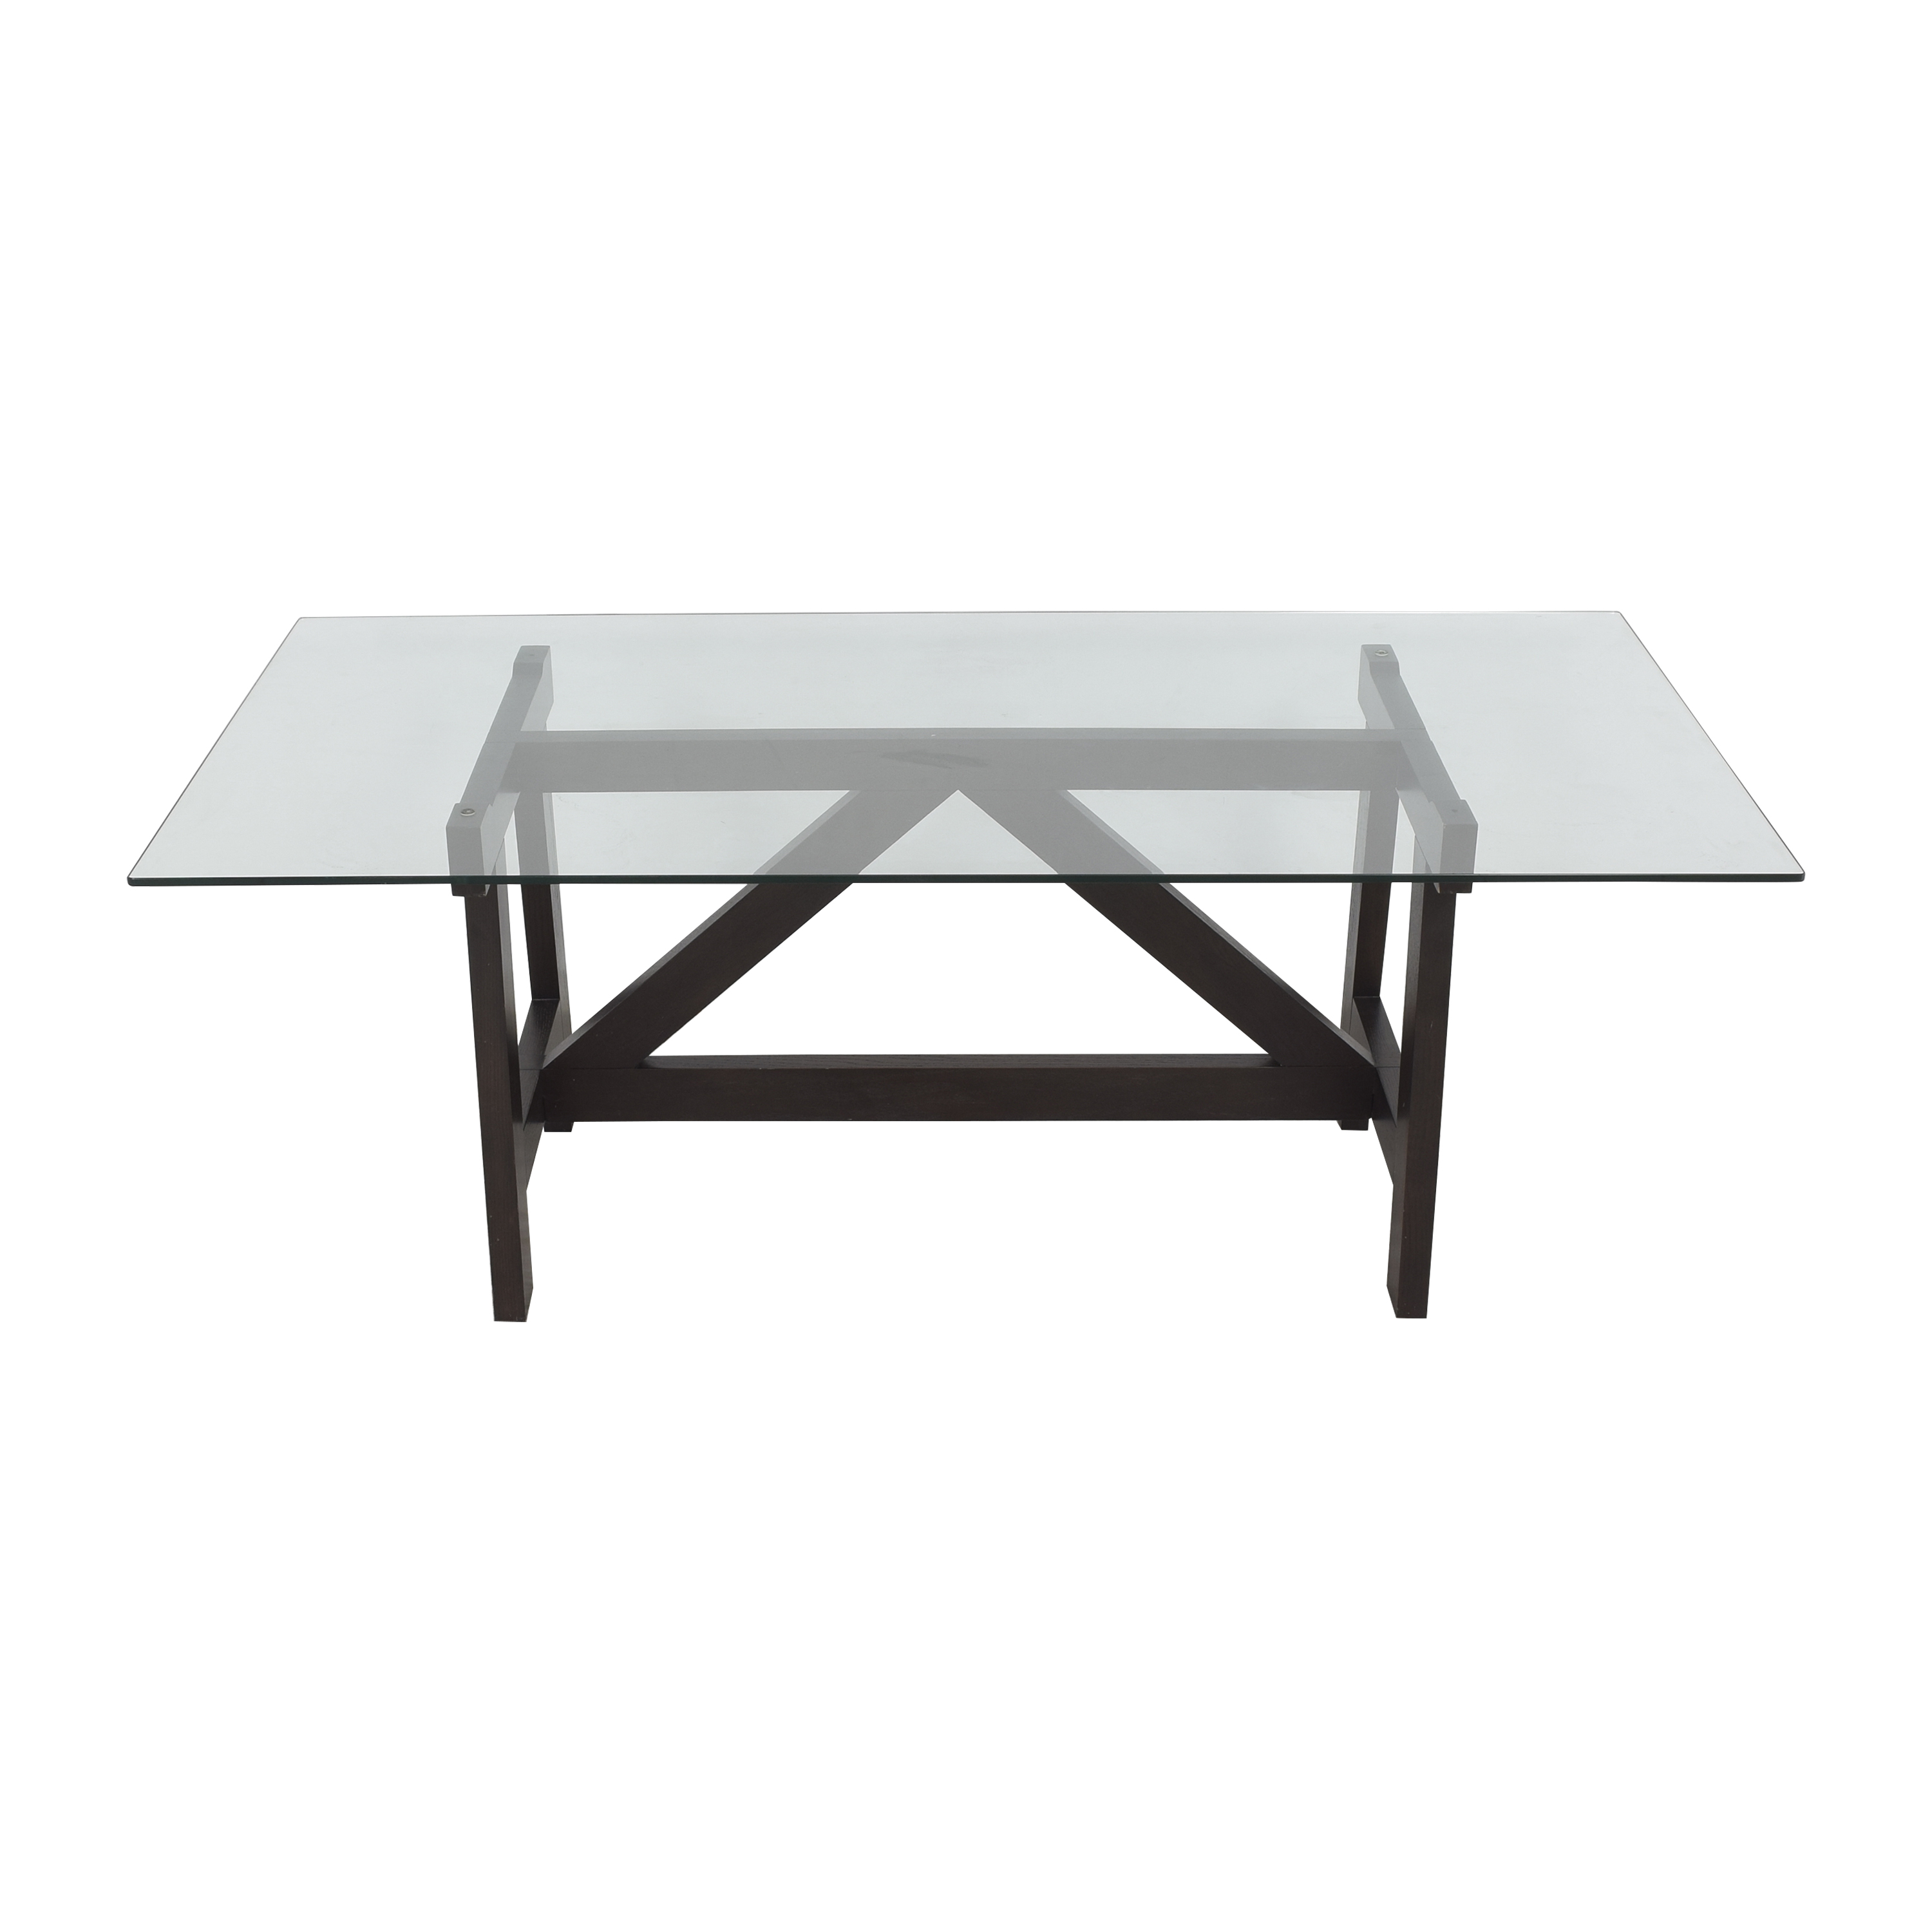 Glass Top Dining Table dimensions